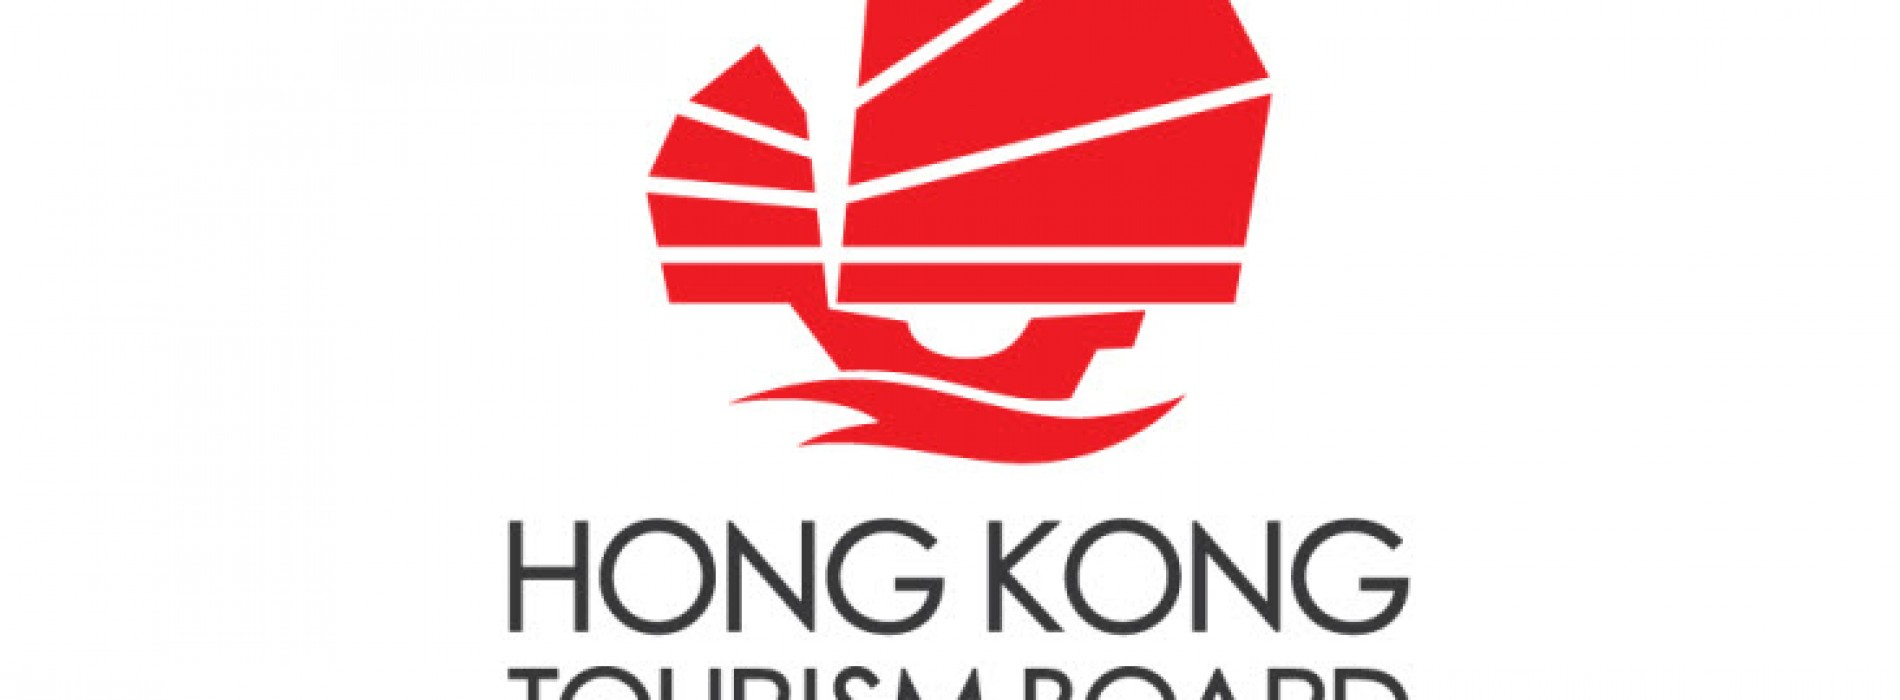 TIRUN offers all-inclusive 'Fly – Cruise' packages to Hong Kong